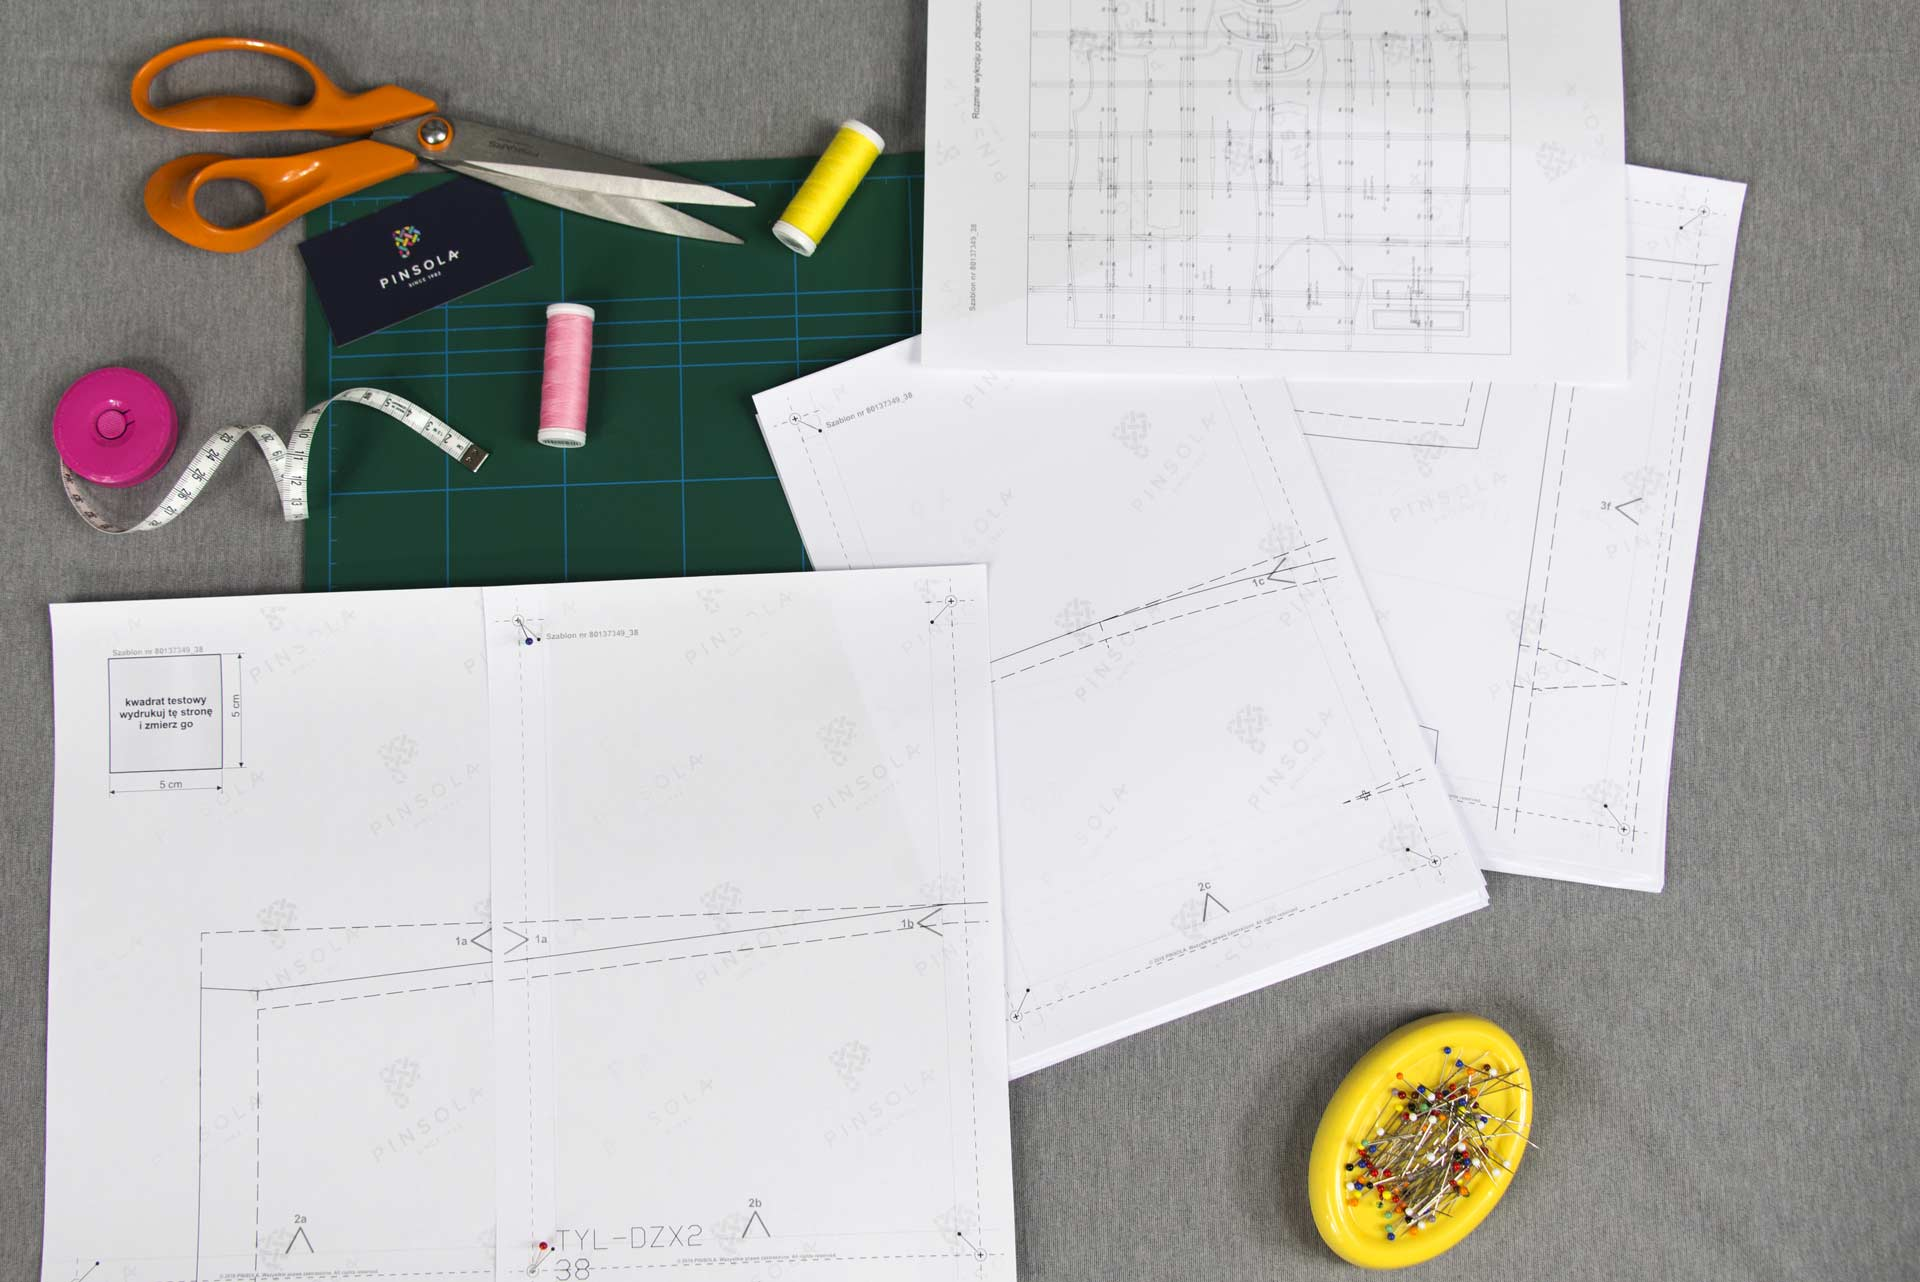 Sewing patterns - Pictures of exemplary tailoring pattern print-outs during the fitting.